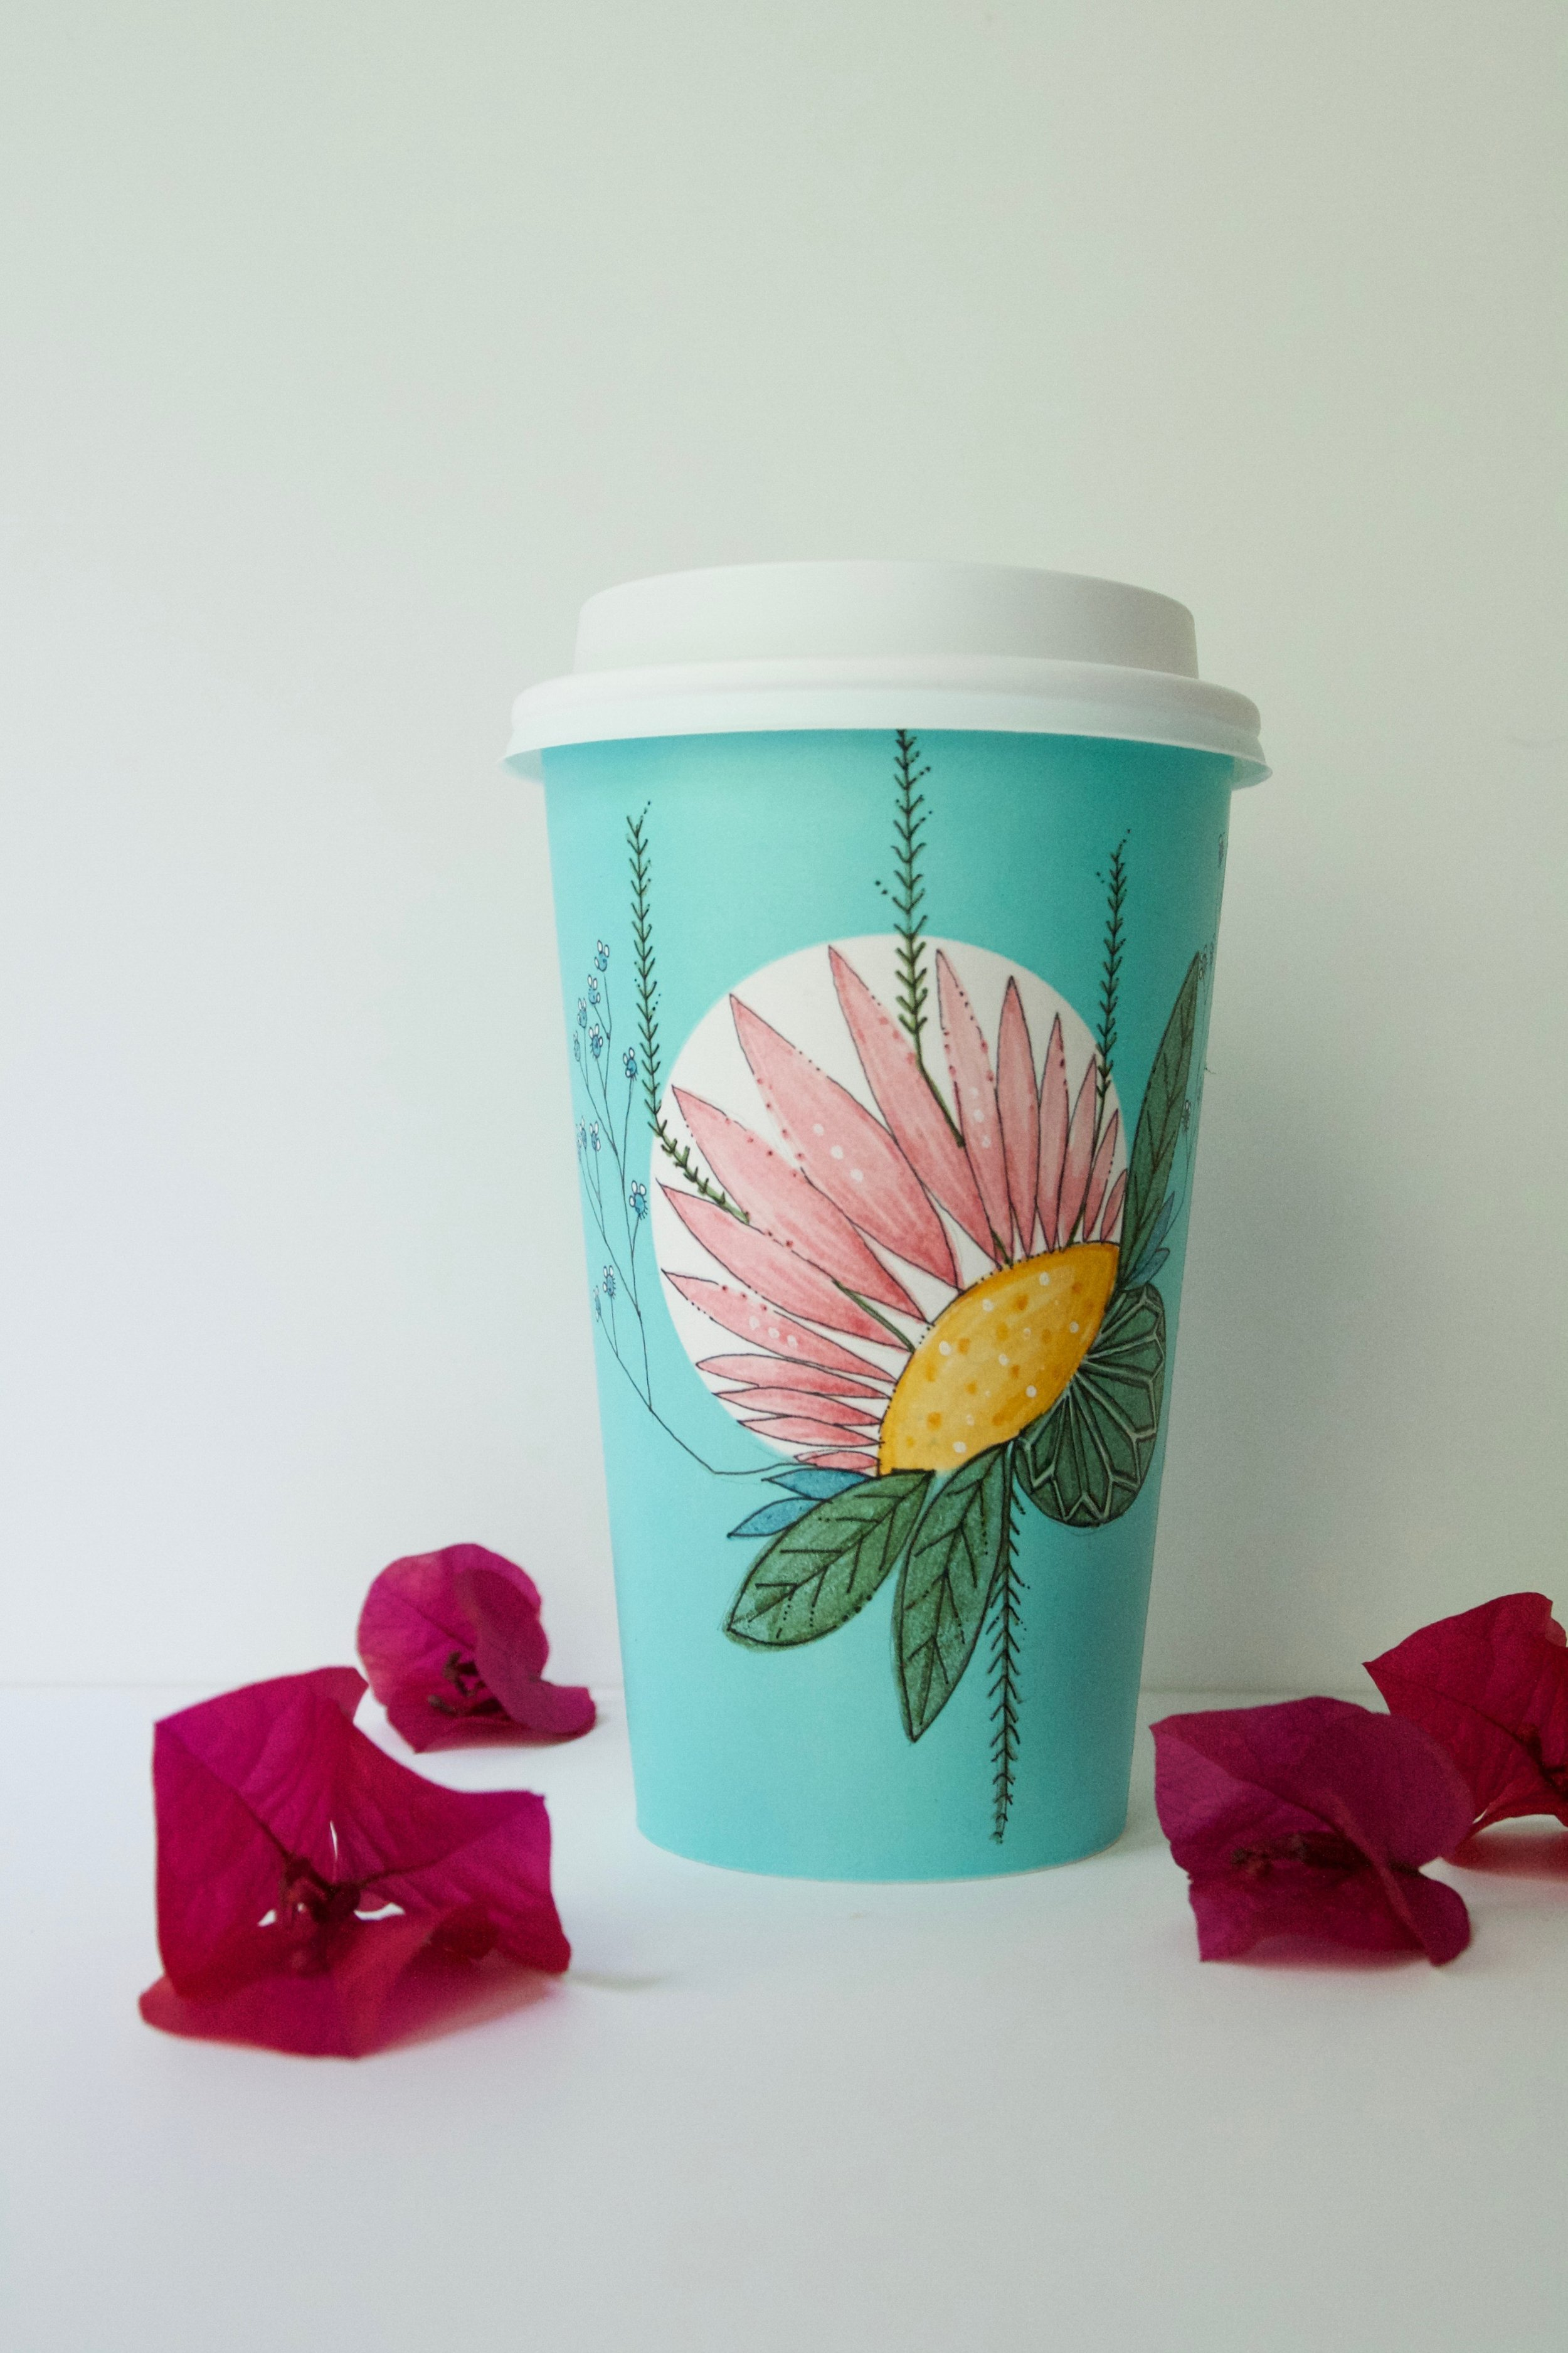 KCD Starbucks cup 2017 copyright